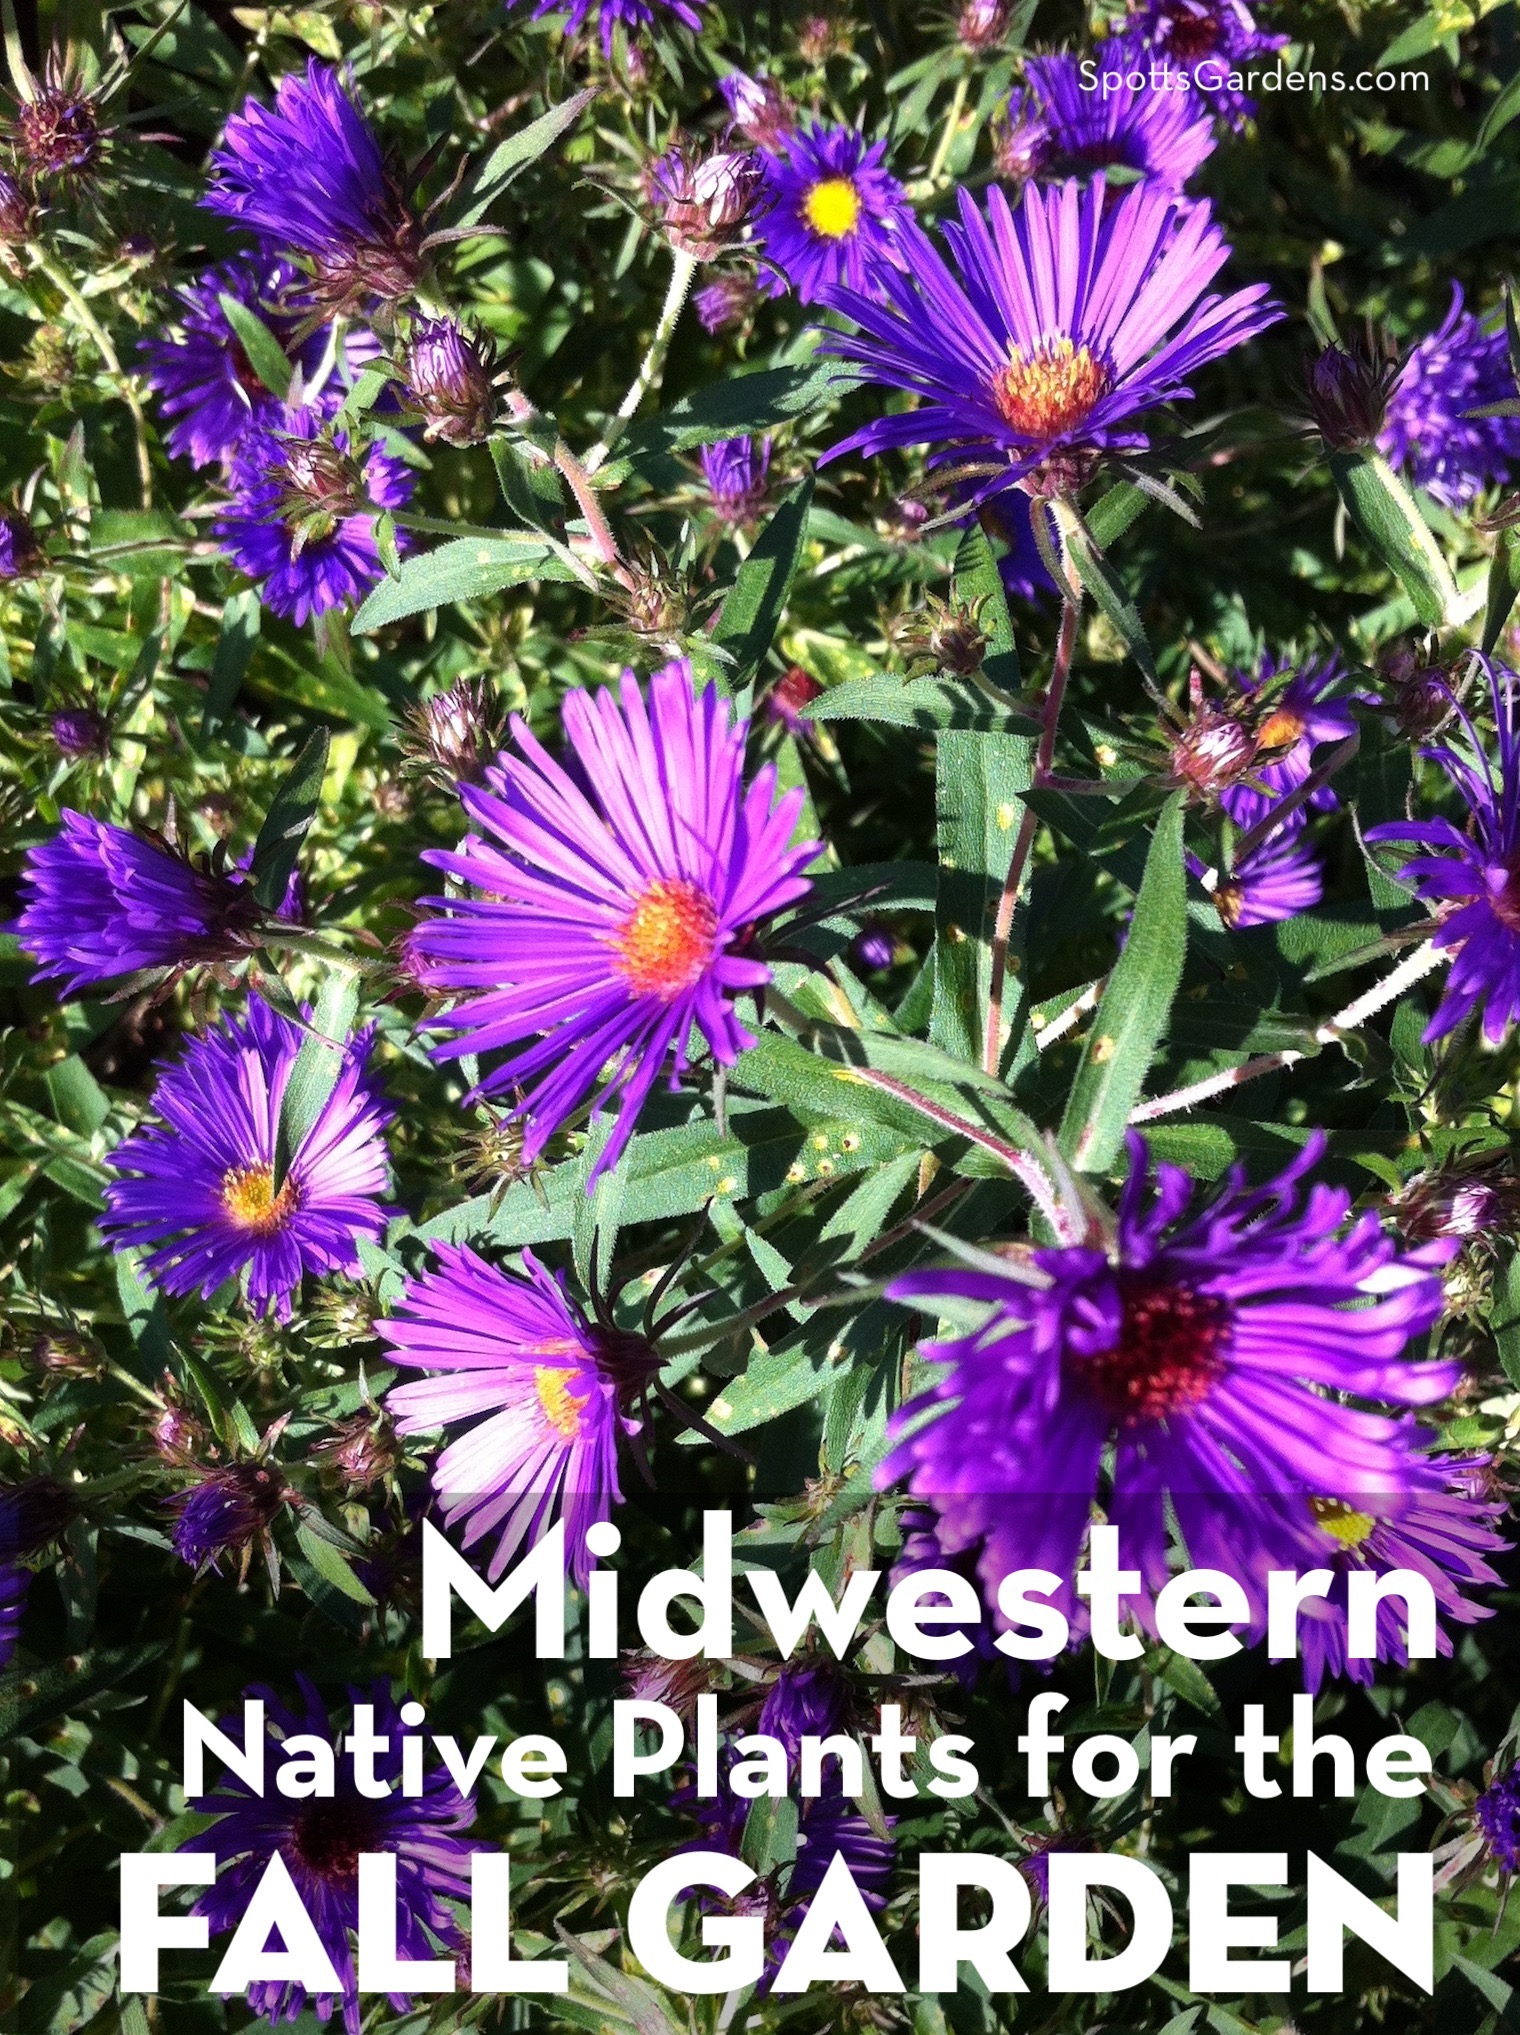 Midwestern Native Plants for the Fall Garden